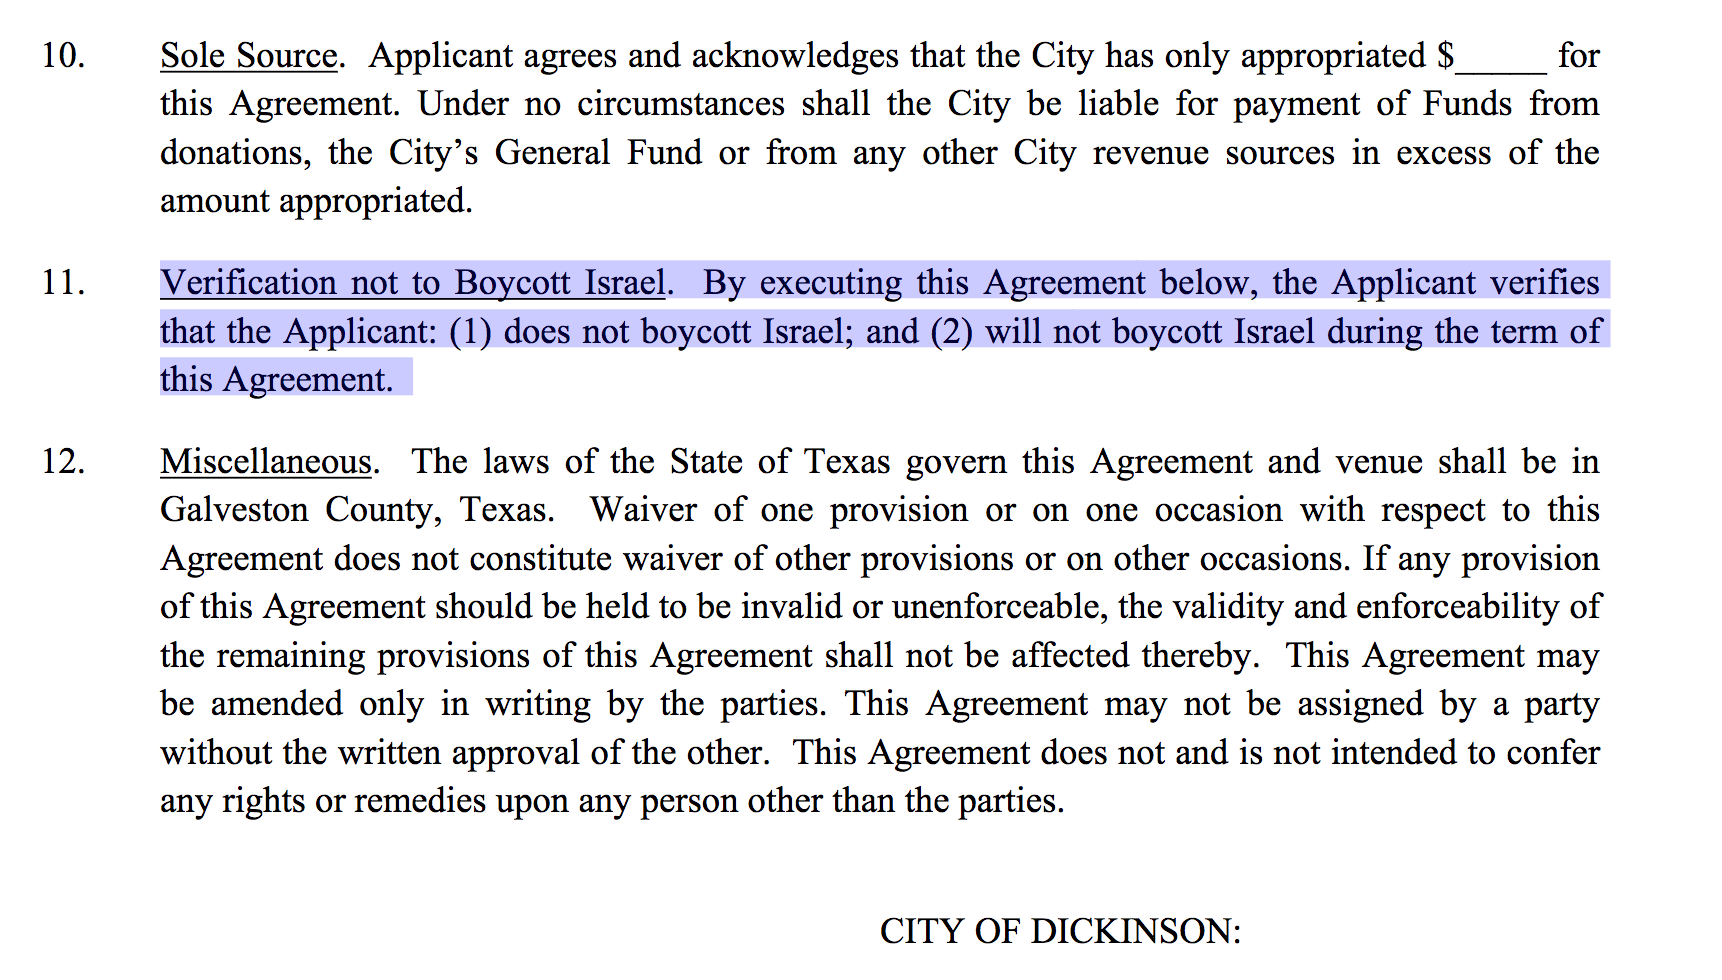 No hurricane aid for Texas city residents who boycott Israel